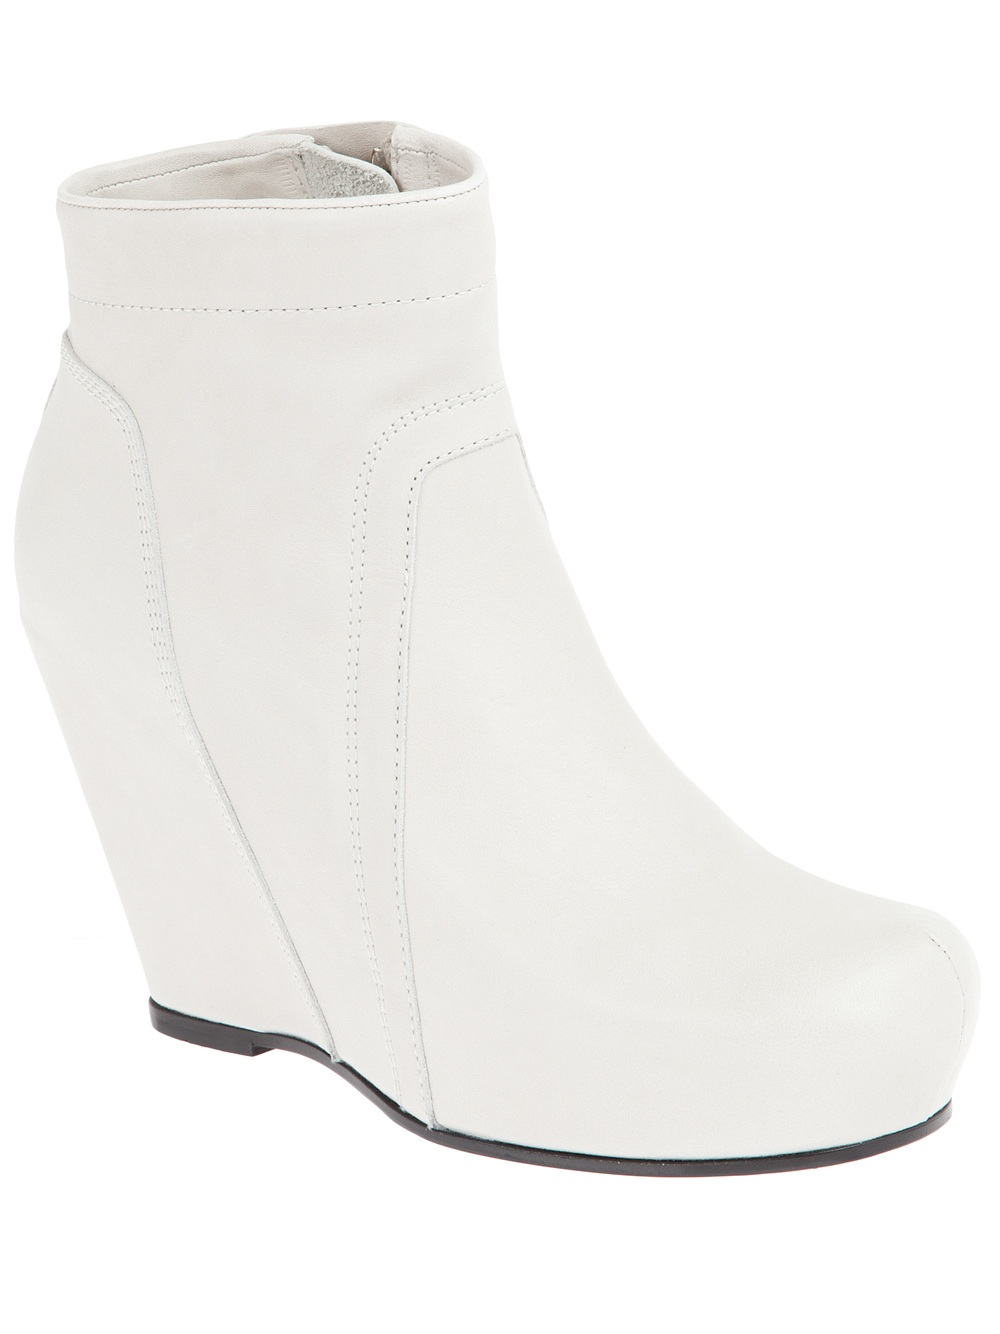 rick owens wedge boot in white lyst